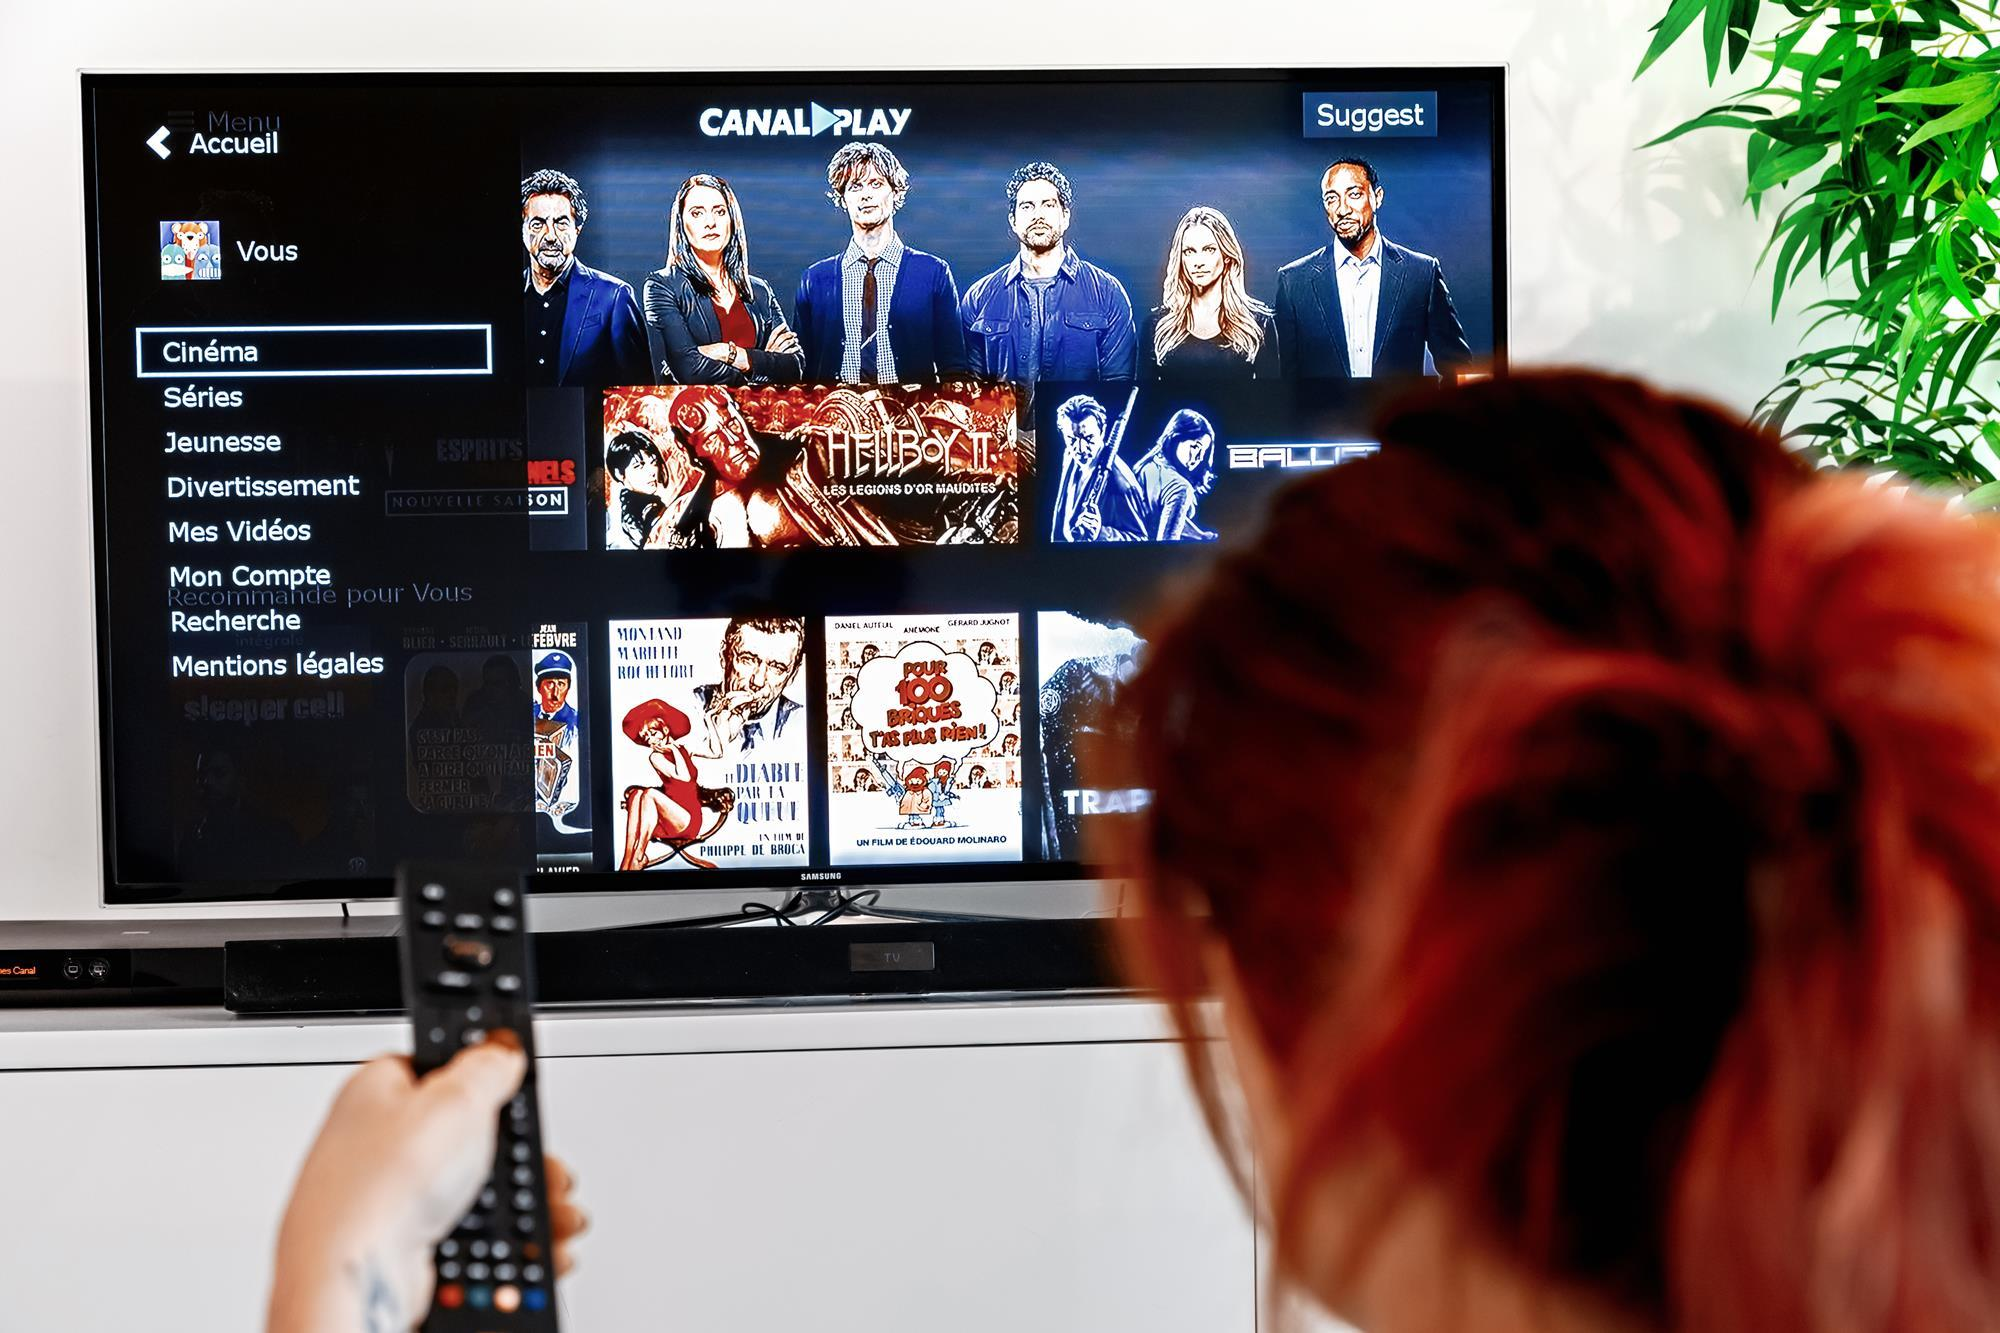 M&A: Broadcasters search for scale | Industry Trends | IBC